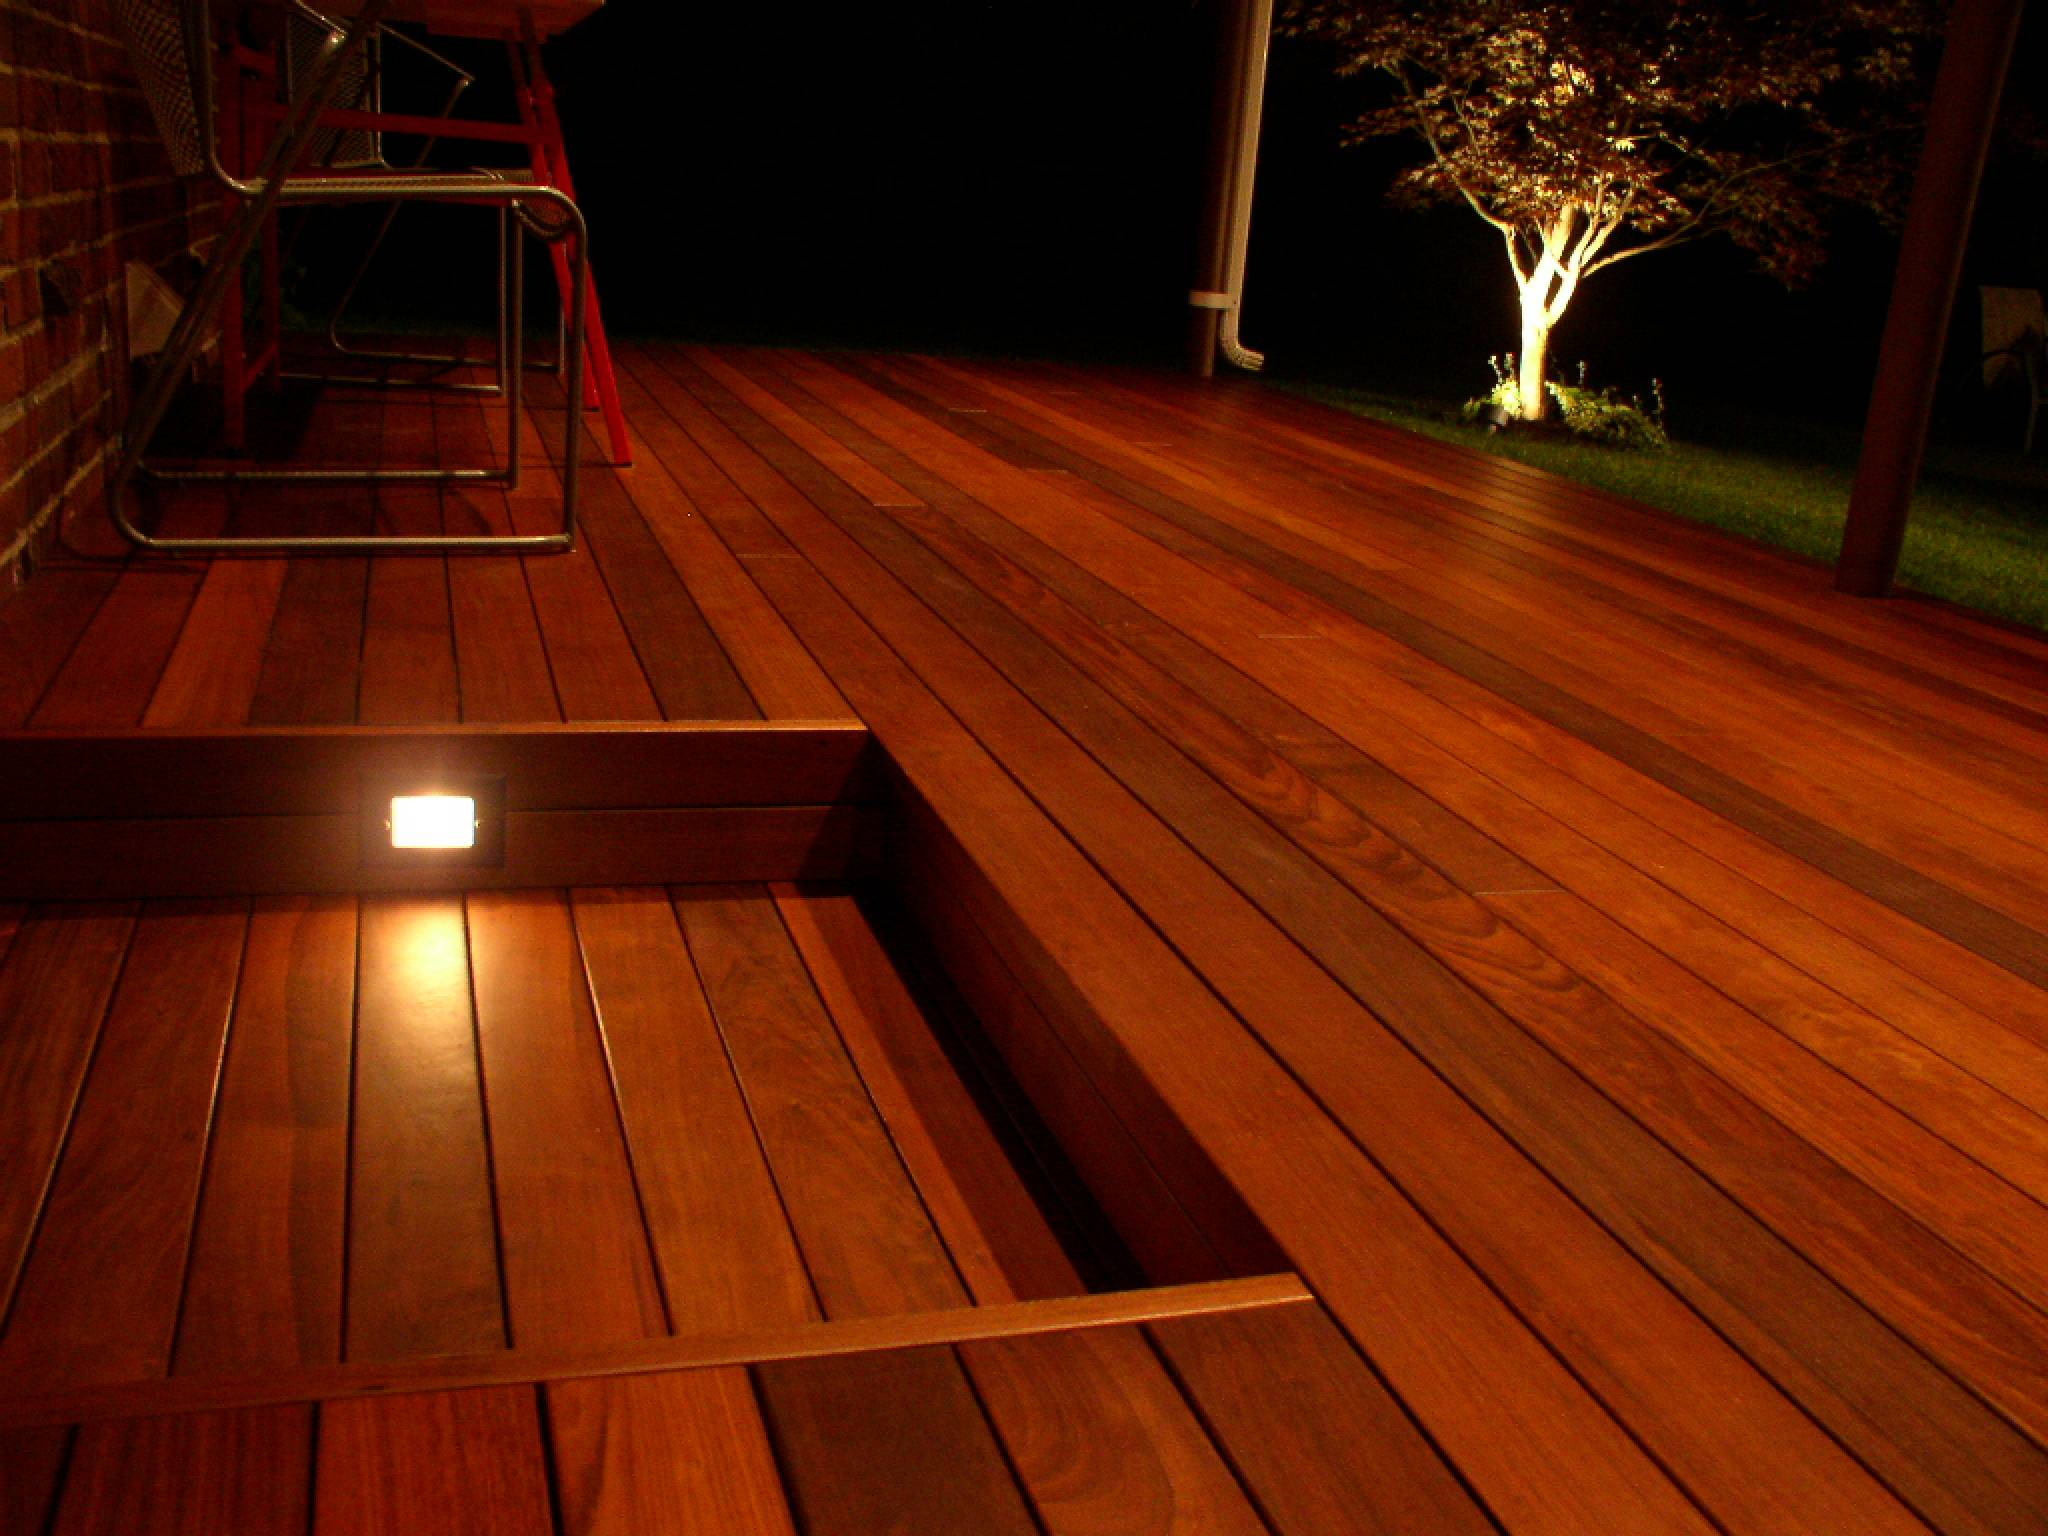 trex decking problems ipe wood furniture cleaning ipe wood furniture care